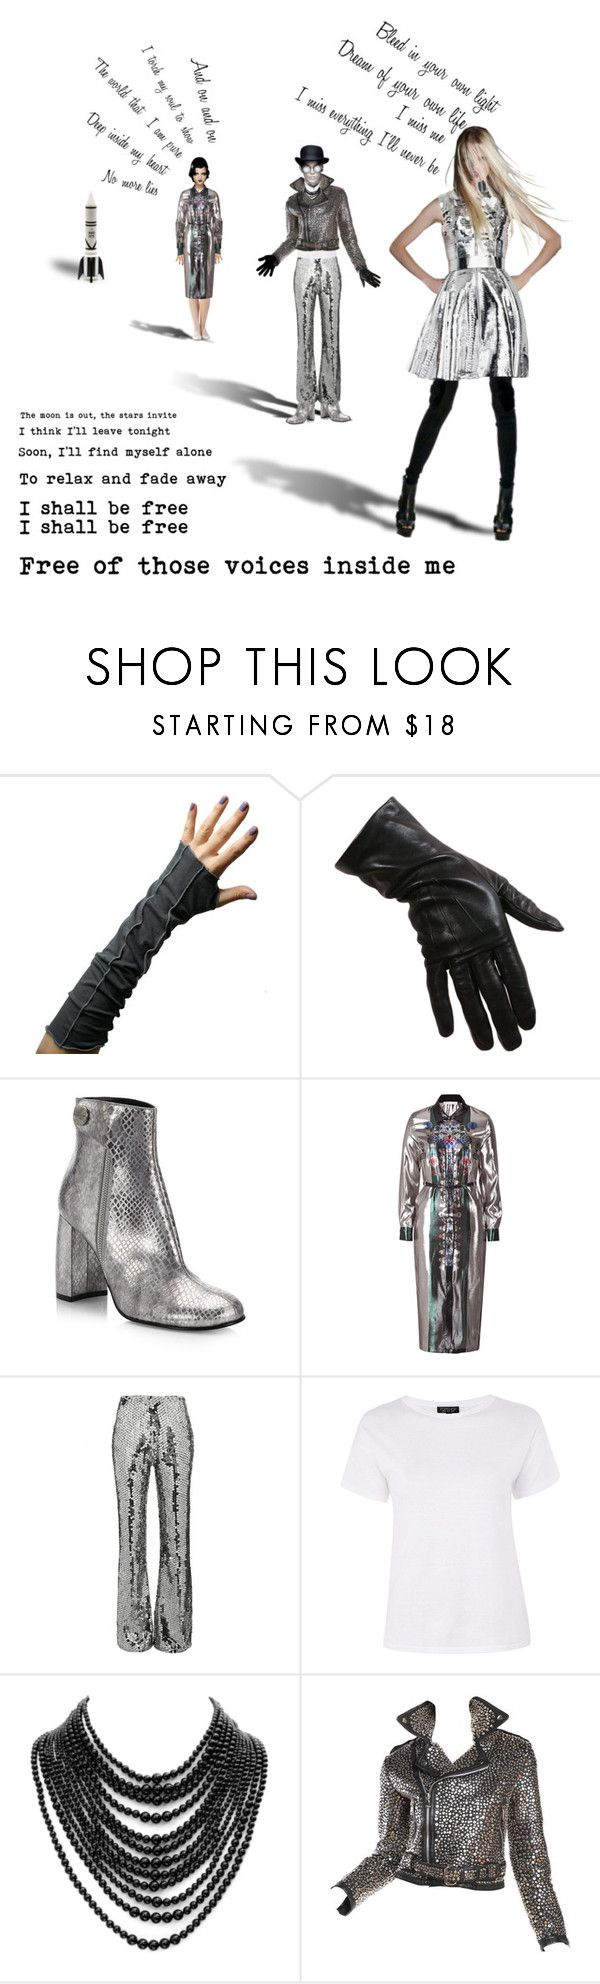 """Rocket"" by leocremonini ❤ liked on Polyvore featuring STELLA McCARTNEY, Mary Katrantzou, Filles à papa, Topshop, Tom Binns, Gareth Pugh, Seletti, doll, metallic and space"